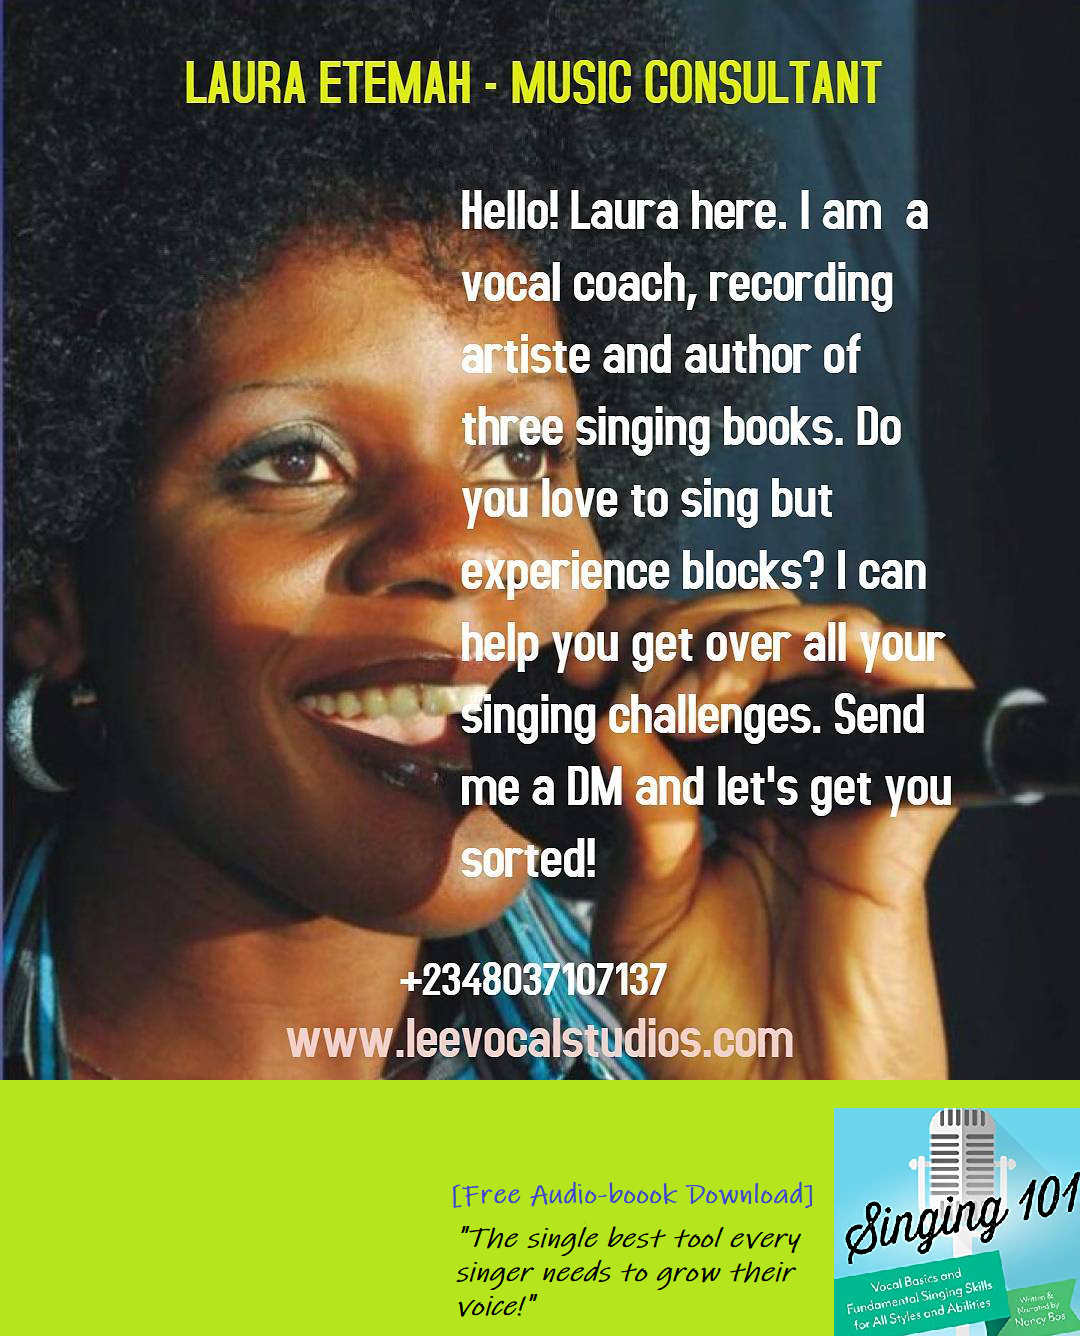 Professional singing lessons and vocal empowerment available for upcoming singers, choir members, singing groups, session/ backup singers and recording artistes. Send me a DM and I will help you unleash your star quality singing voice! #learntosing #singbetter #musiclessonsalagomeji #kidsmusiclessonsyaba #singlikeastar #newmusicreleases #videoshoot #bandrehearsal #musicworldtour #musictour #pasystem #soundchecks #talentmanager #talentagent #lagosconcerts #showbiz #celebritysingers #singingexerc